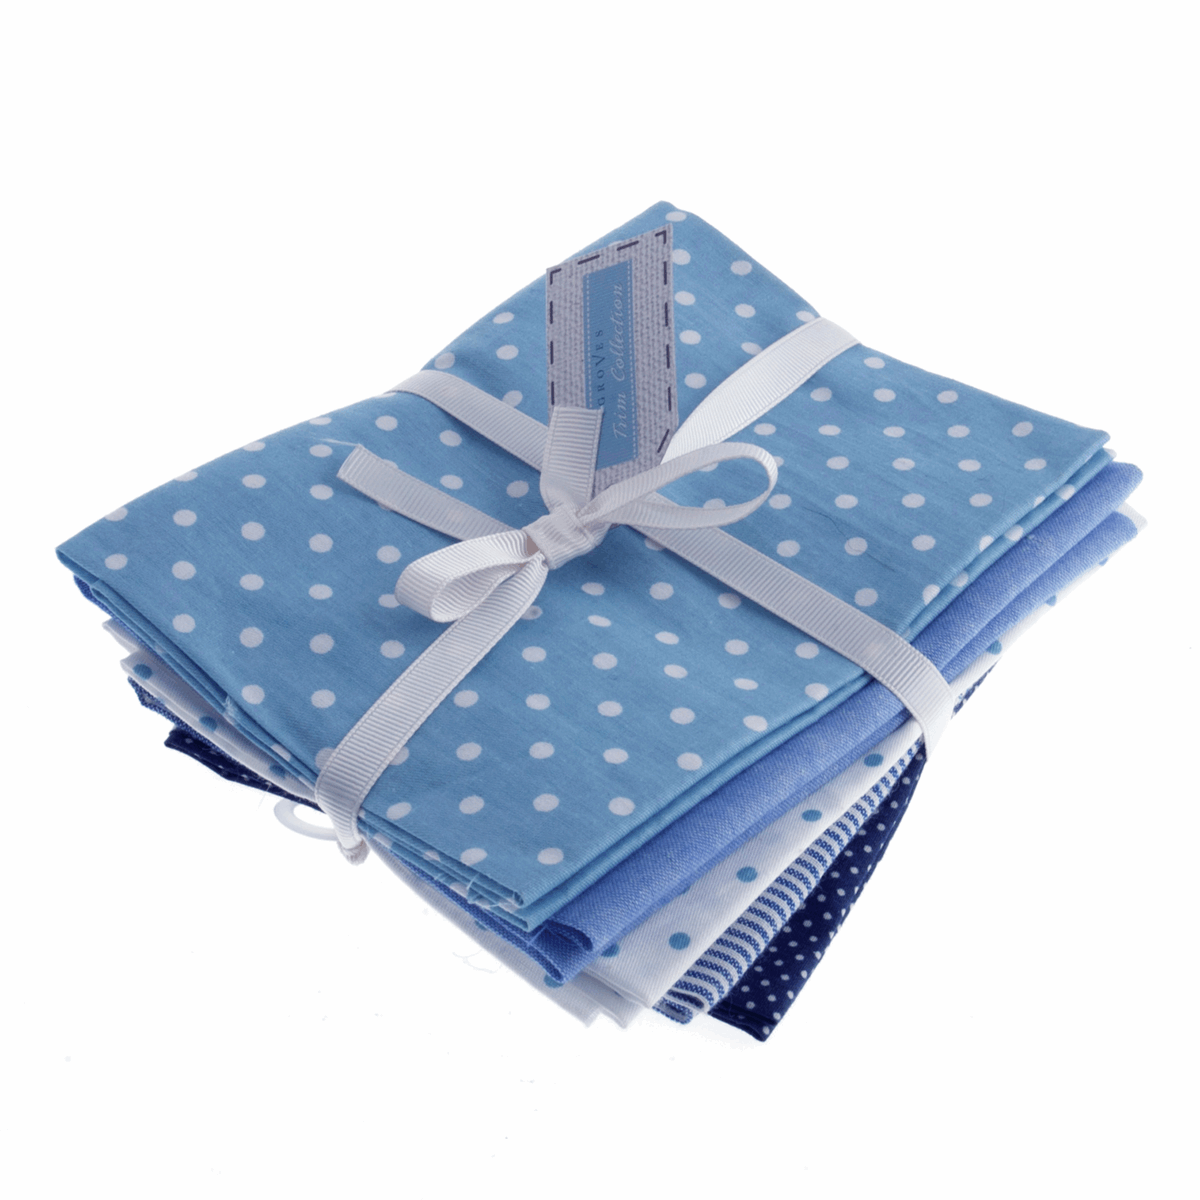 Fat Quarter Pack - Cotton Linen - Blue (5 Pieces)